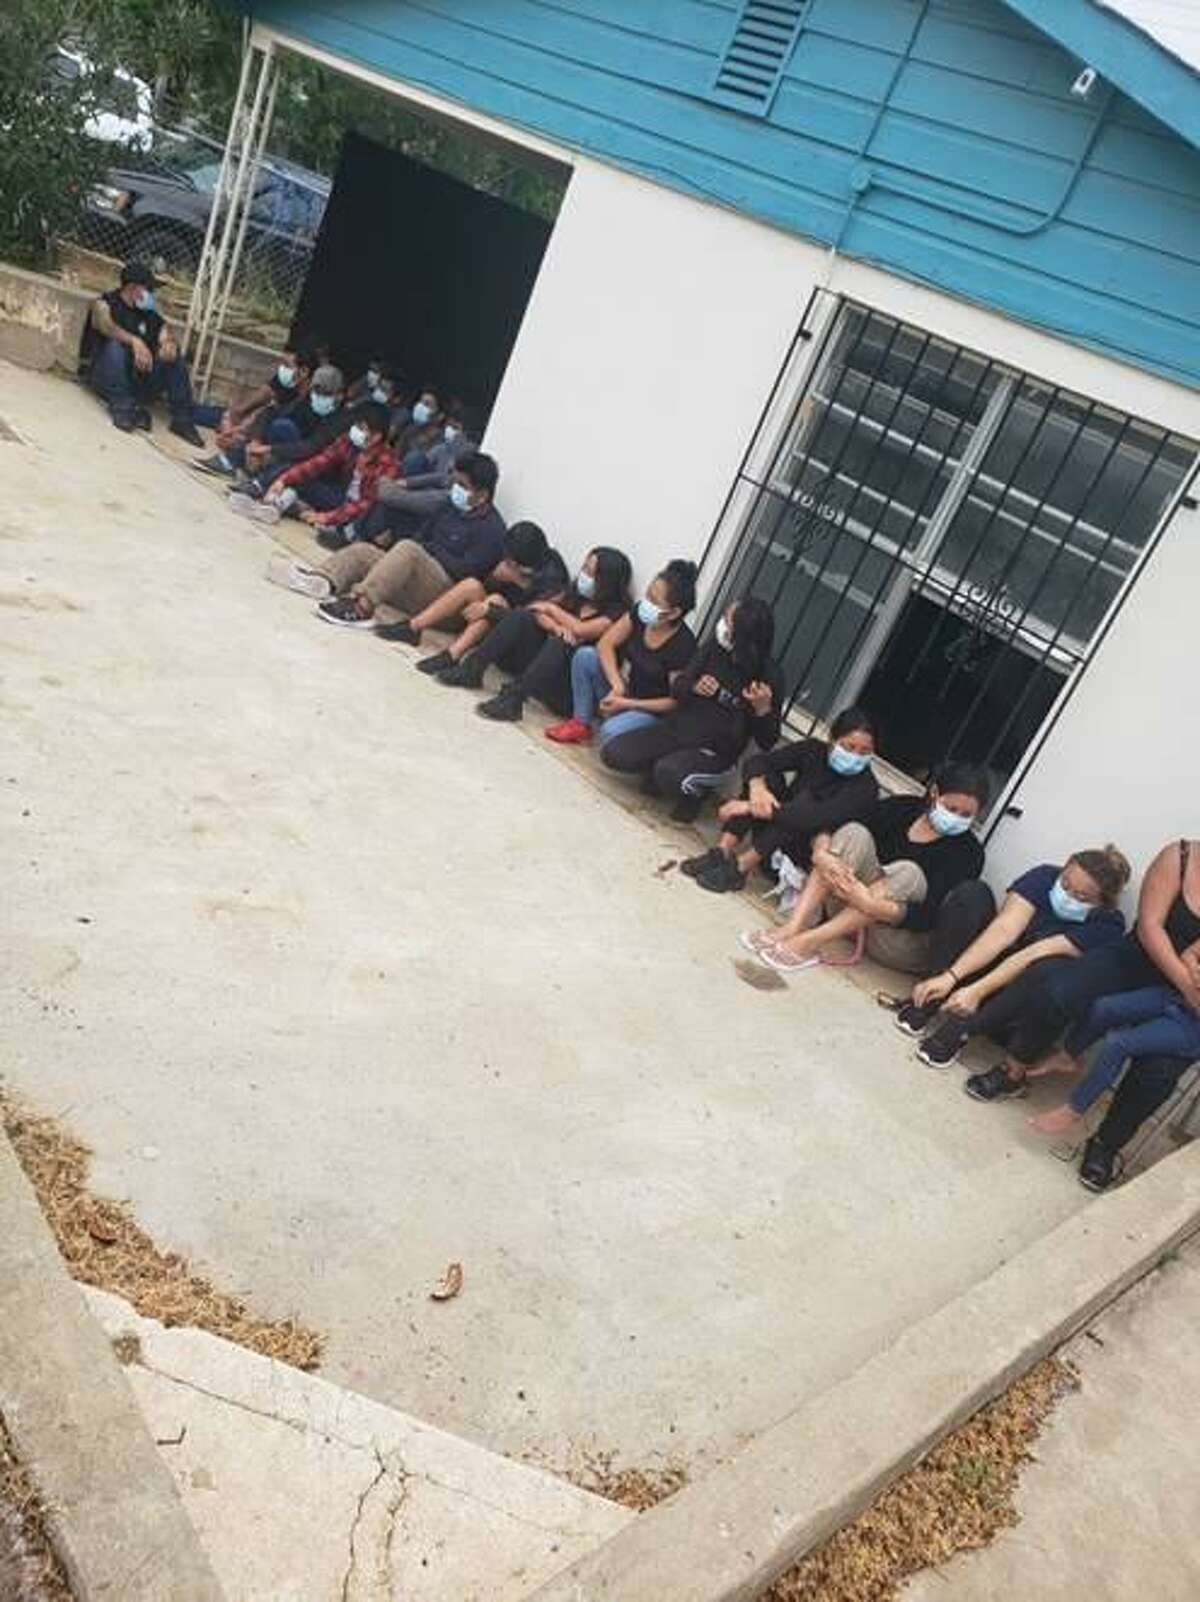 Authorities said they discovered this group of immigrants who had crossed the border illegally following surveillance at a home in the 1100 block of East Lyon Street.